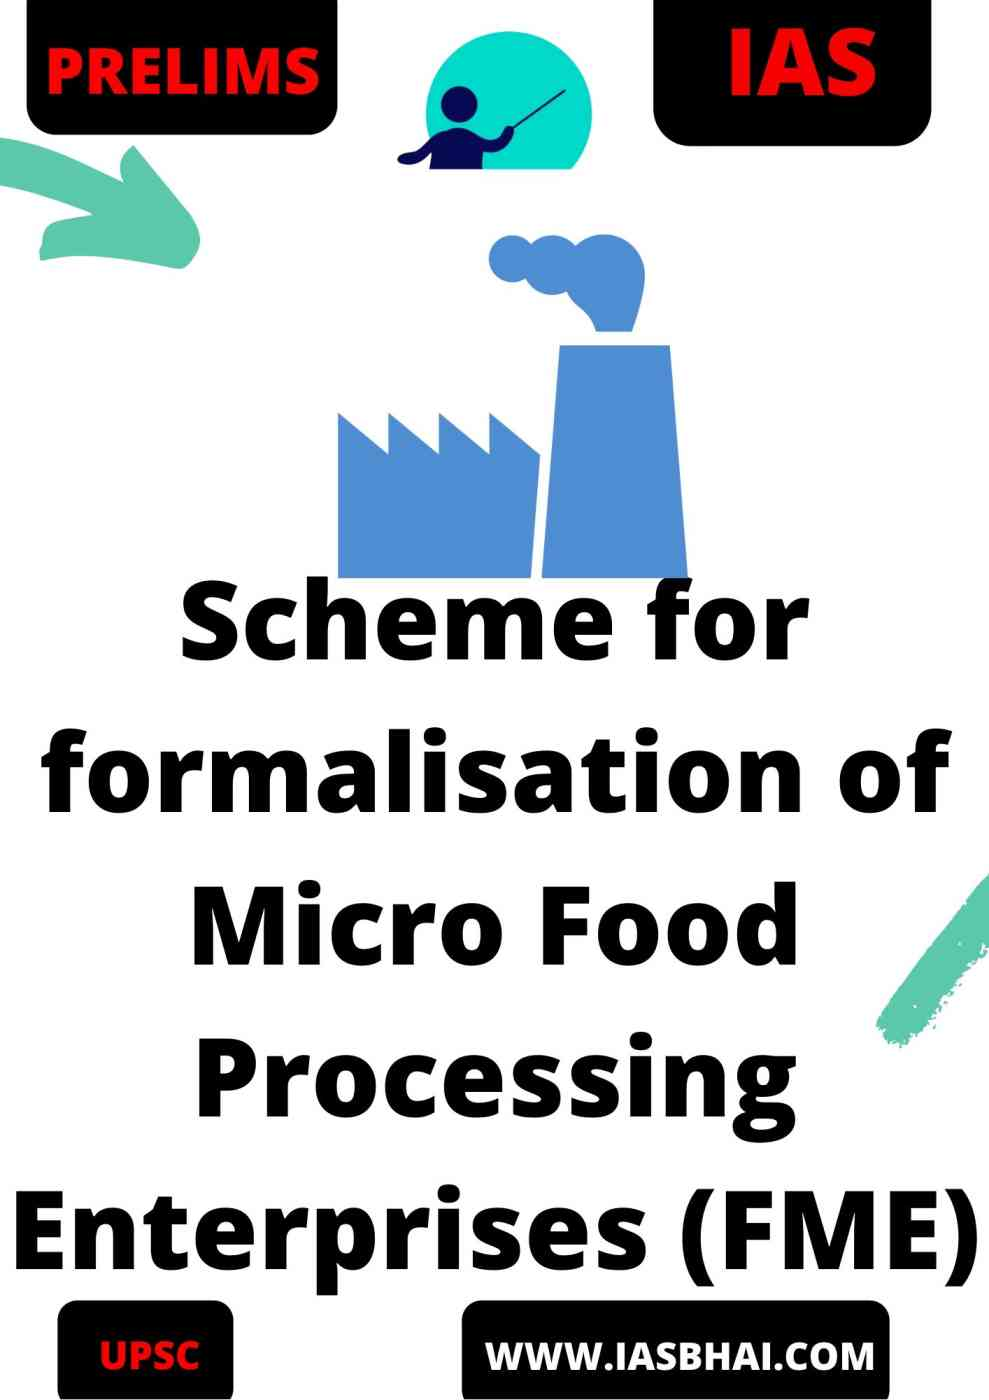 Scheme for formalisation of Micro Food Processing Enterprises (FME) UPSC